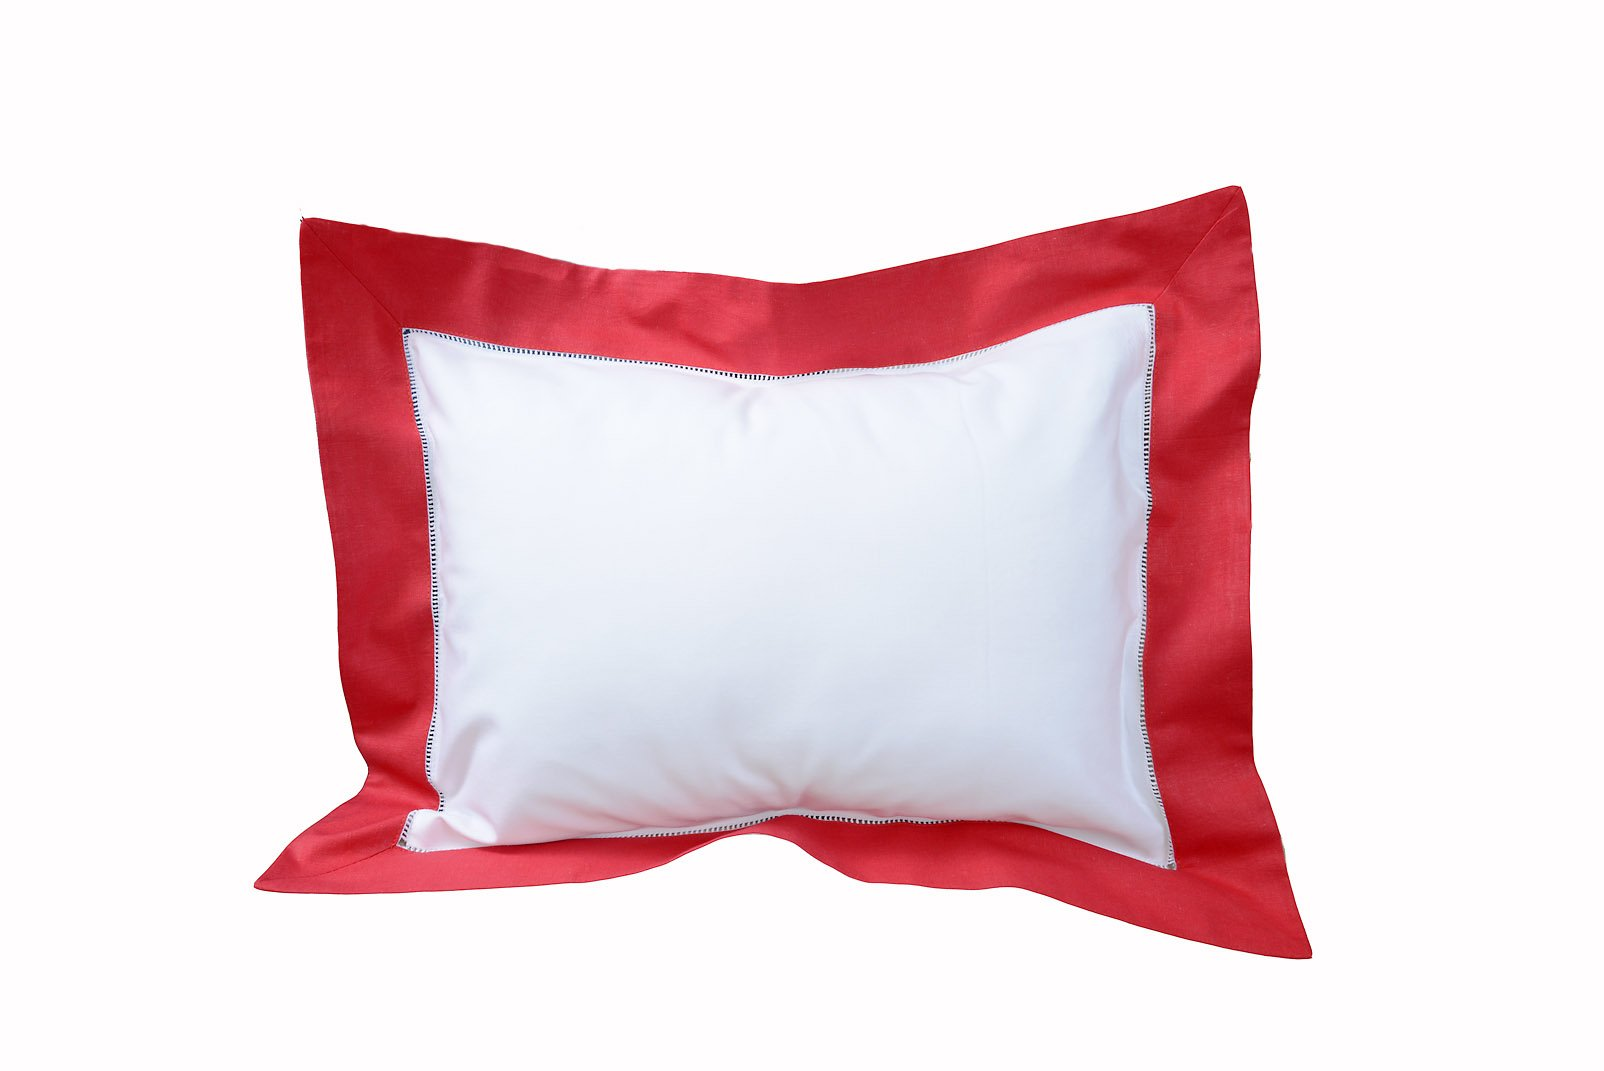 OPTCO Baby Pillow Sham Color Trimming. 12x16 Baby Sham. Pillow Form Included. White with Red Color Trim